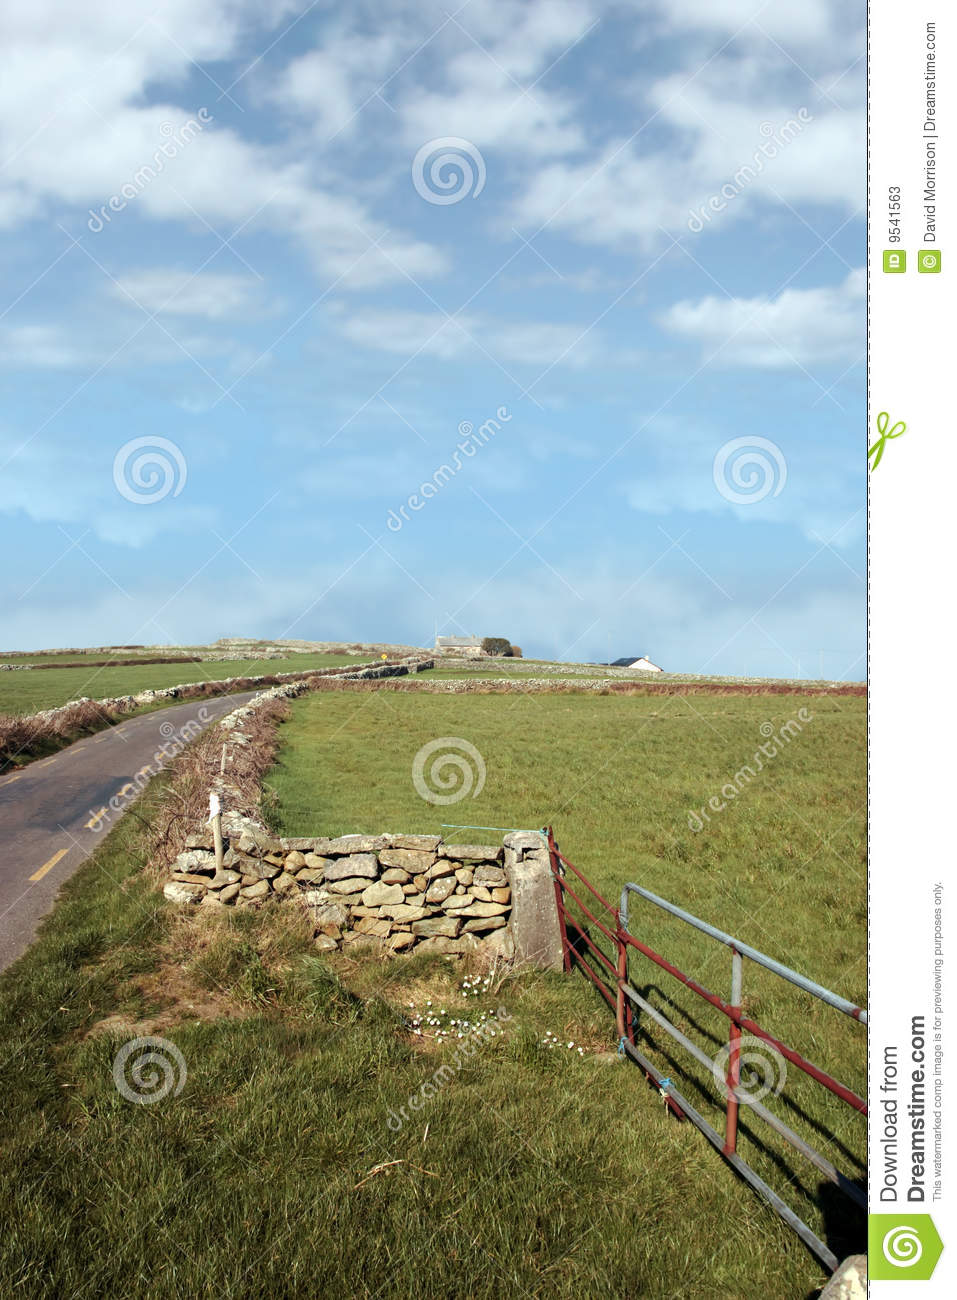 Home Time Road Roblox Id: Quiet Country Road Stock Photos